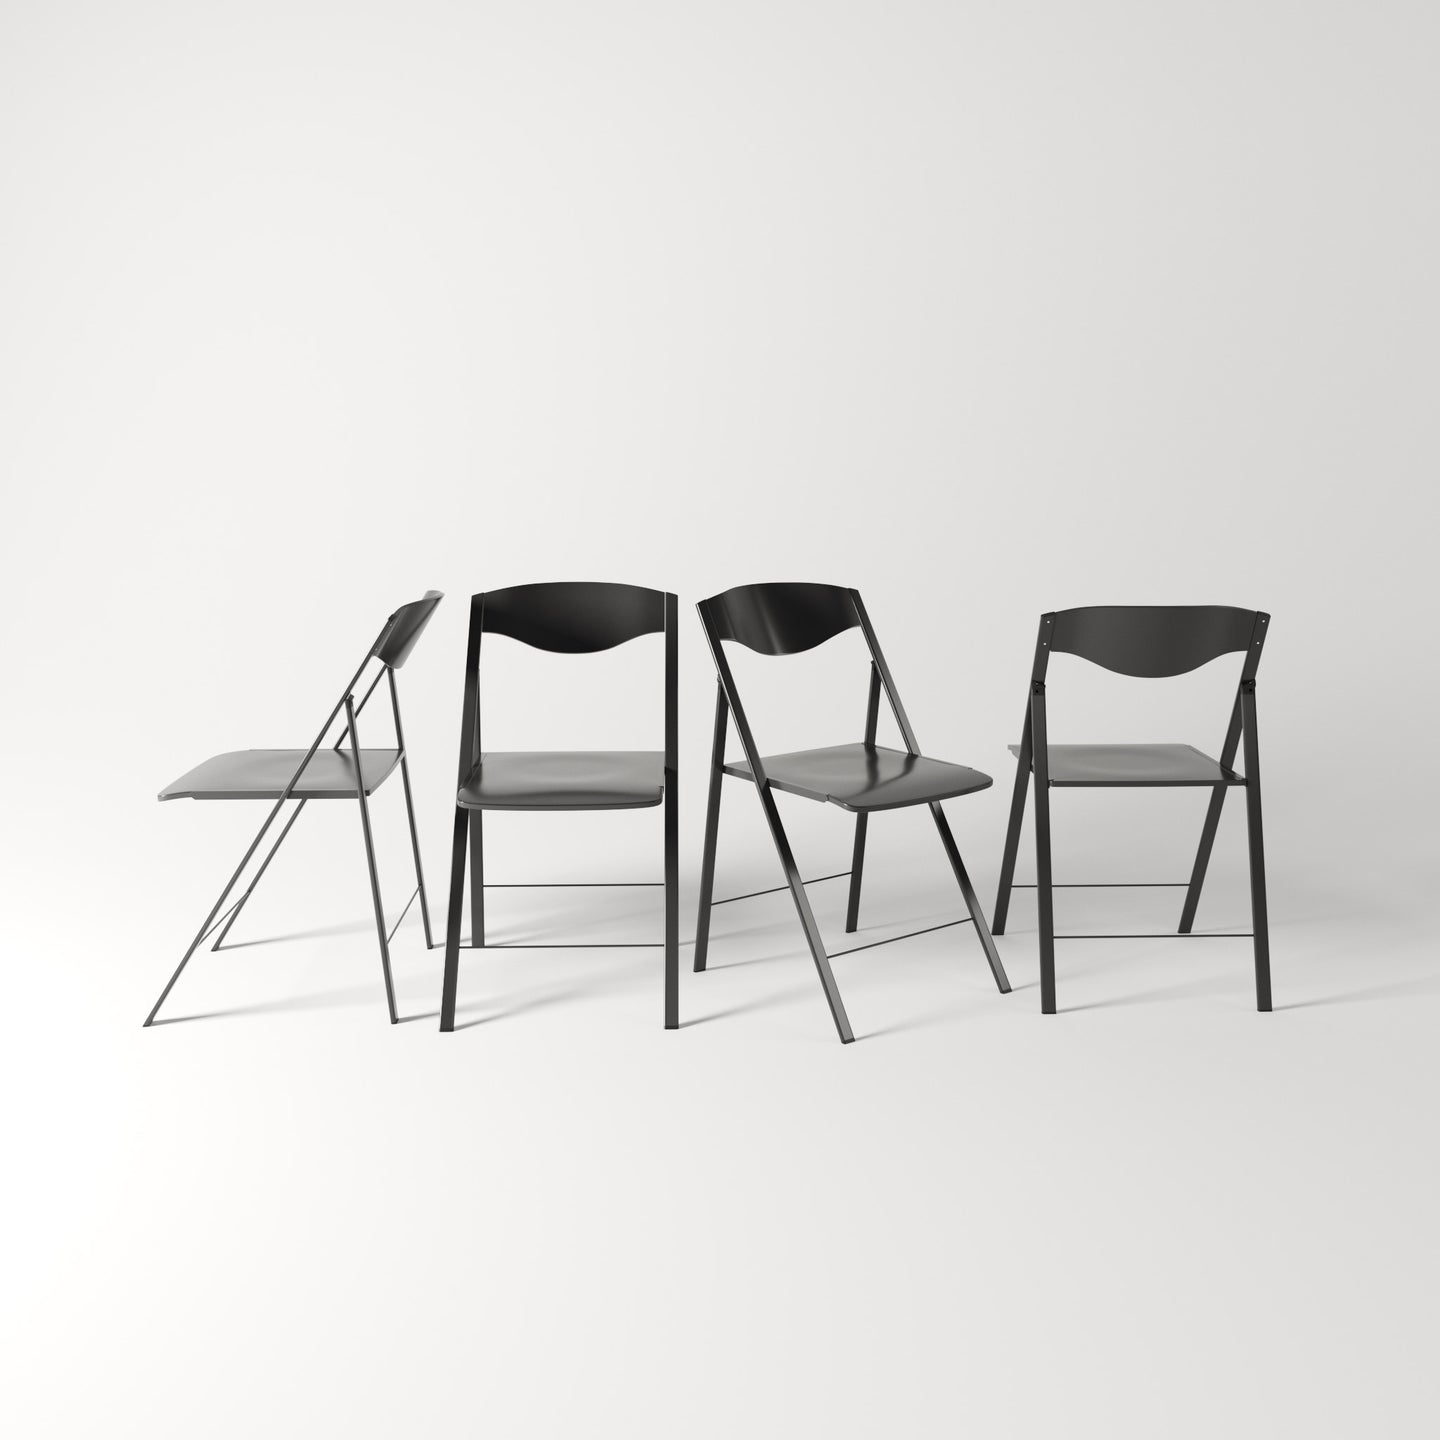 Magro Chairs - 4 pack